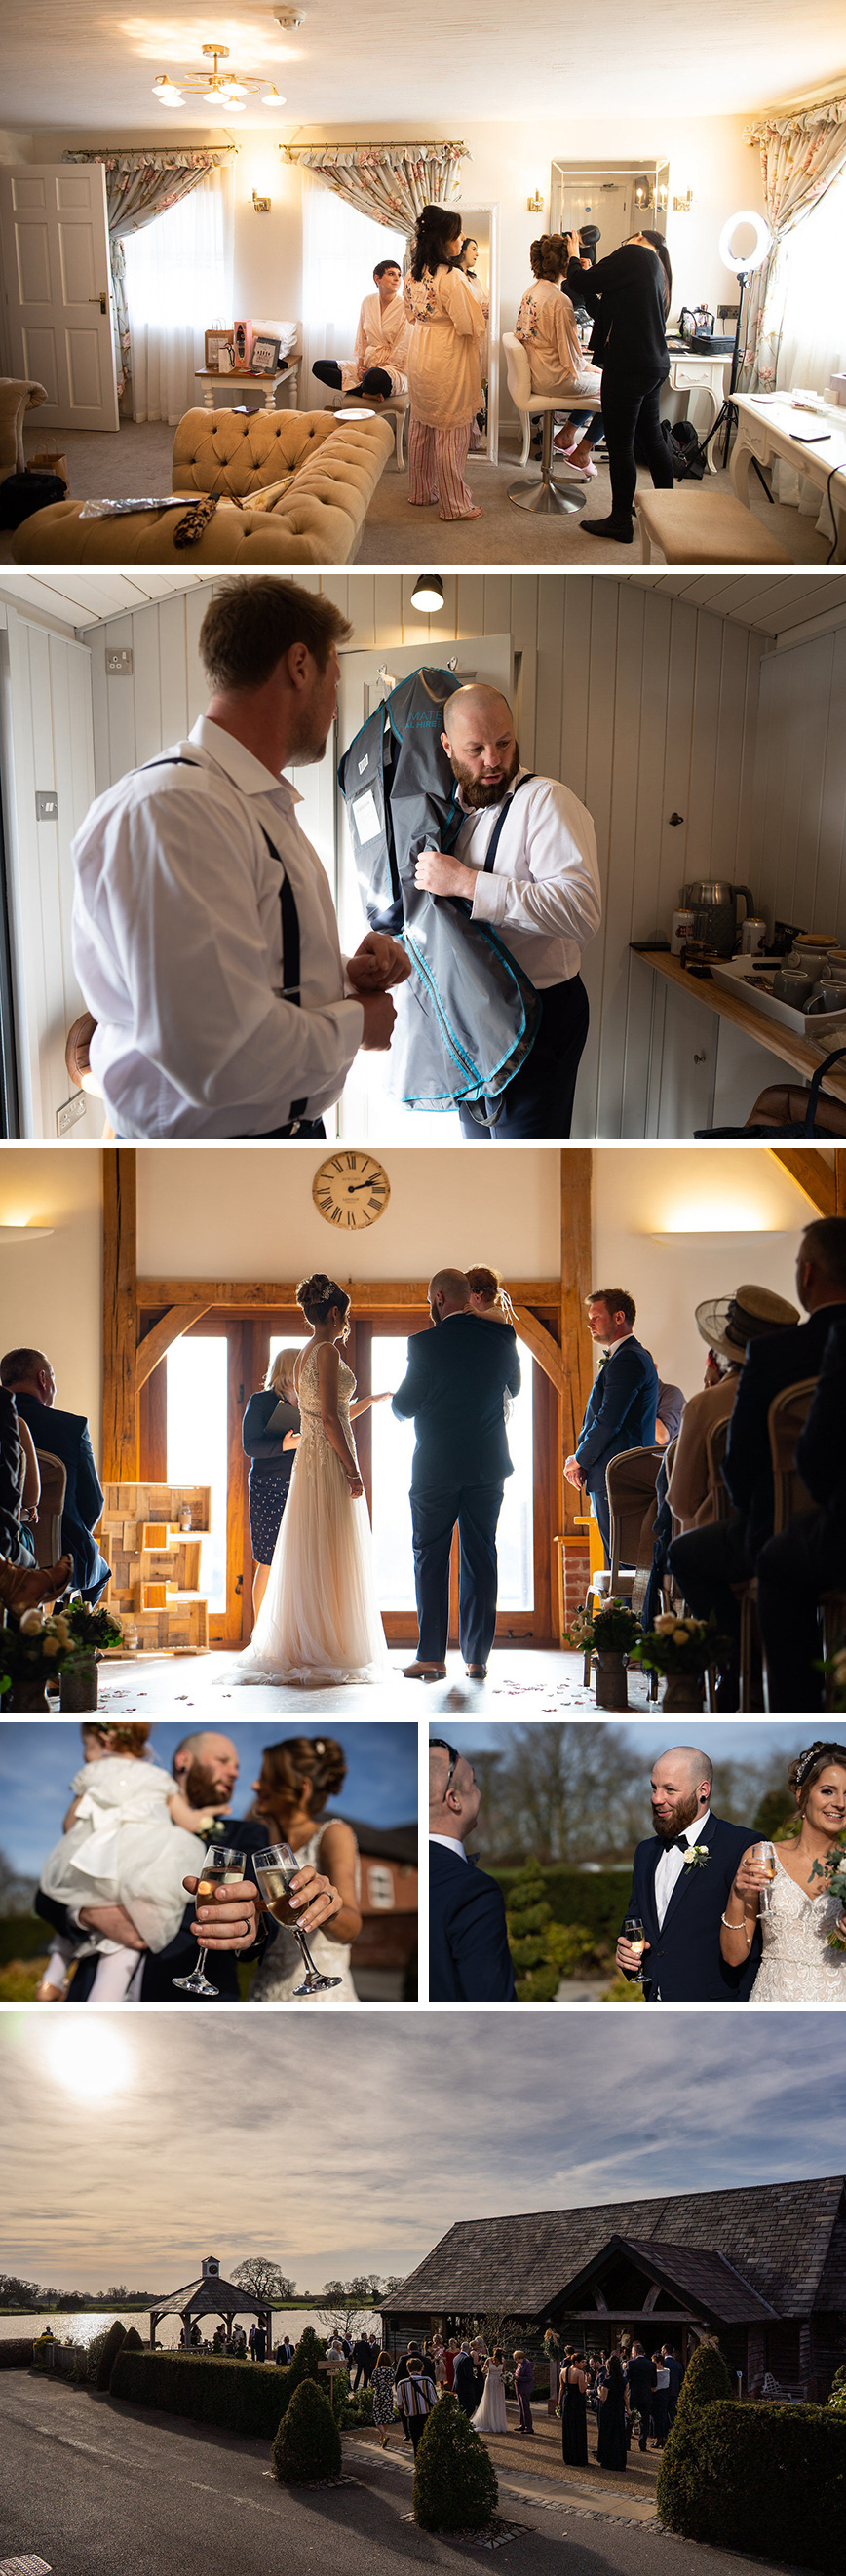 Real Wedding - Kimberley and Thomas' Rustic Winter Wedding at Sandhole Oak Barn | CHWV